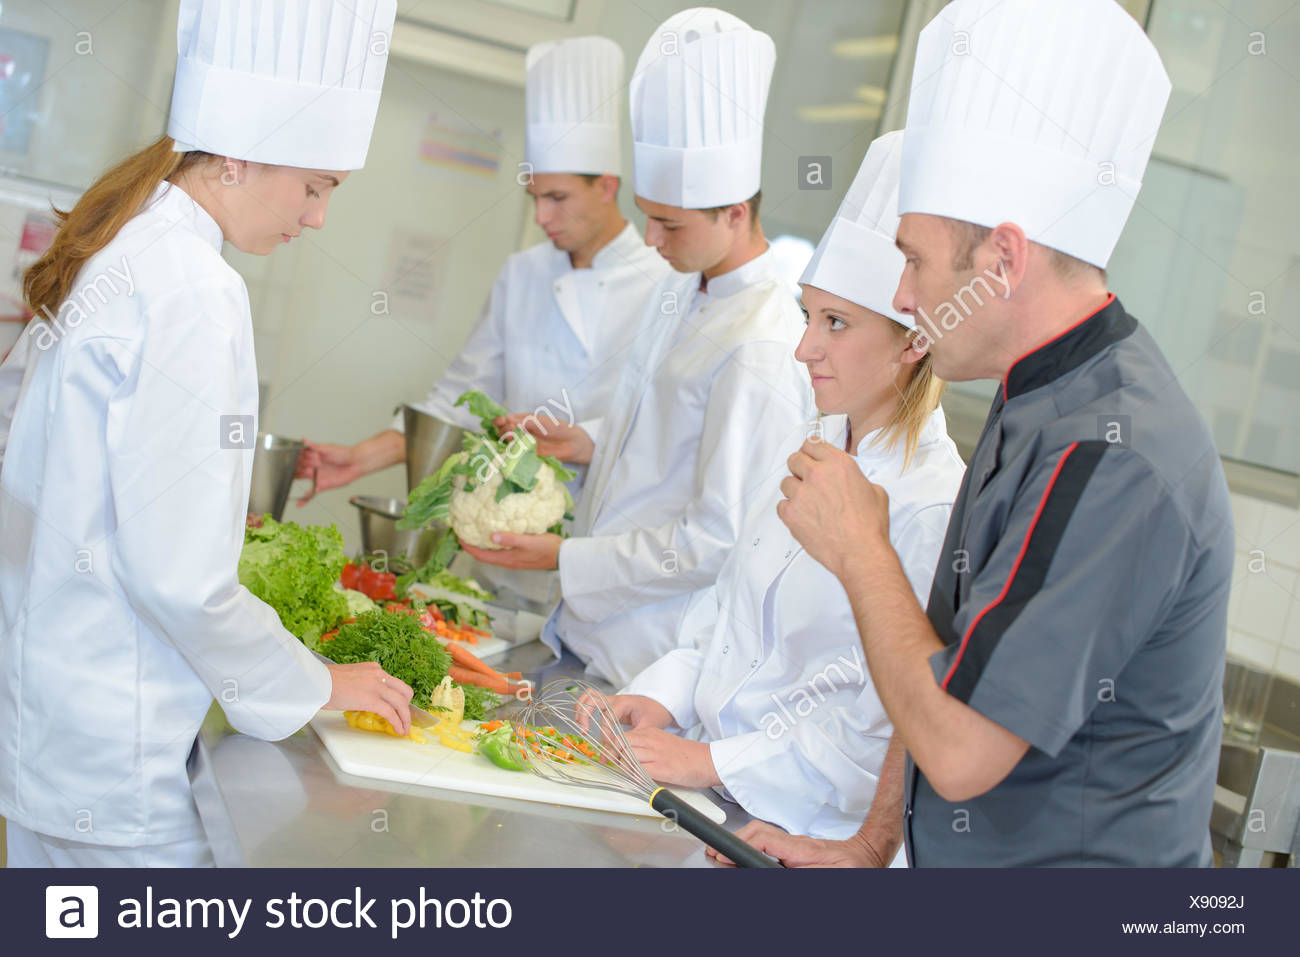 food preparation - Stock Image